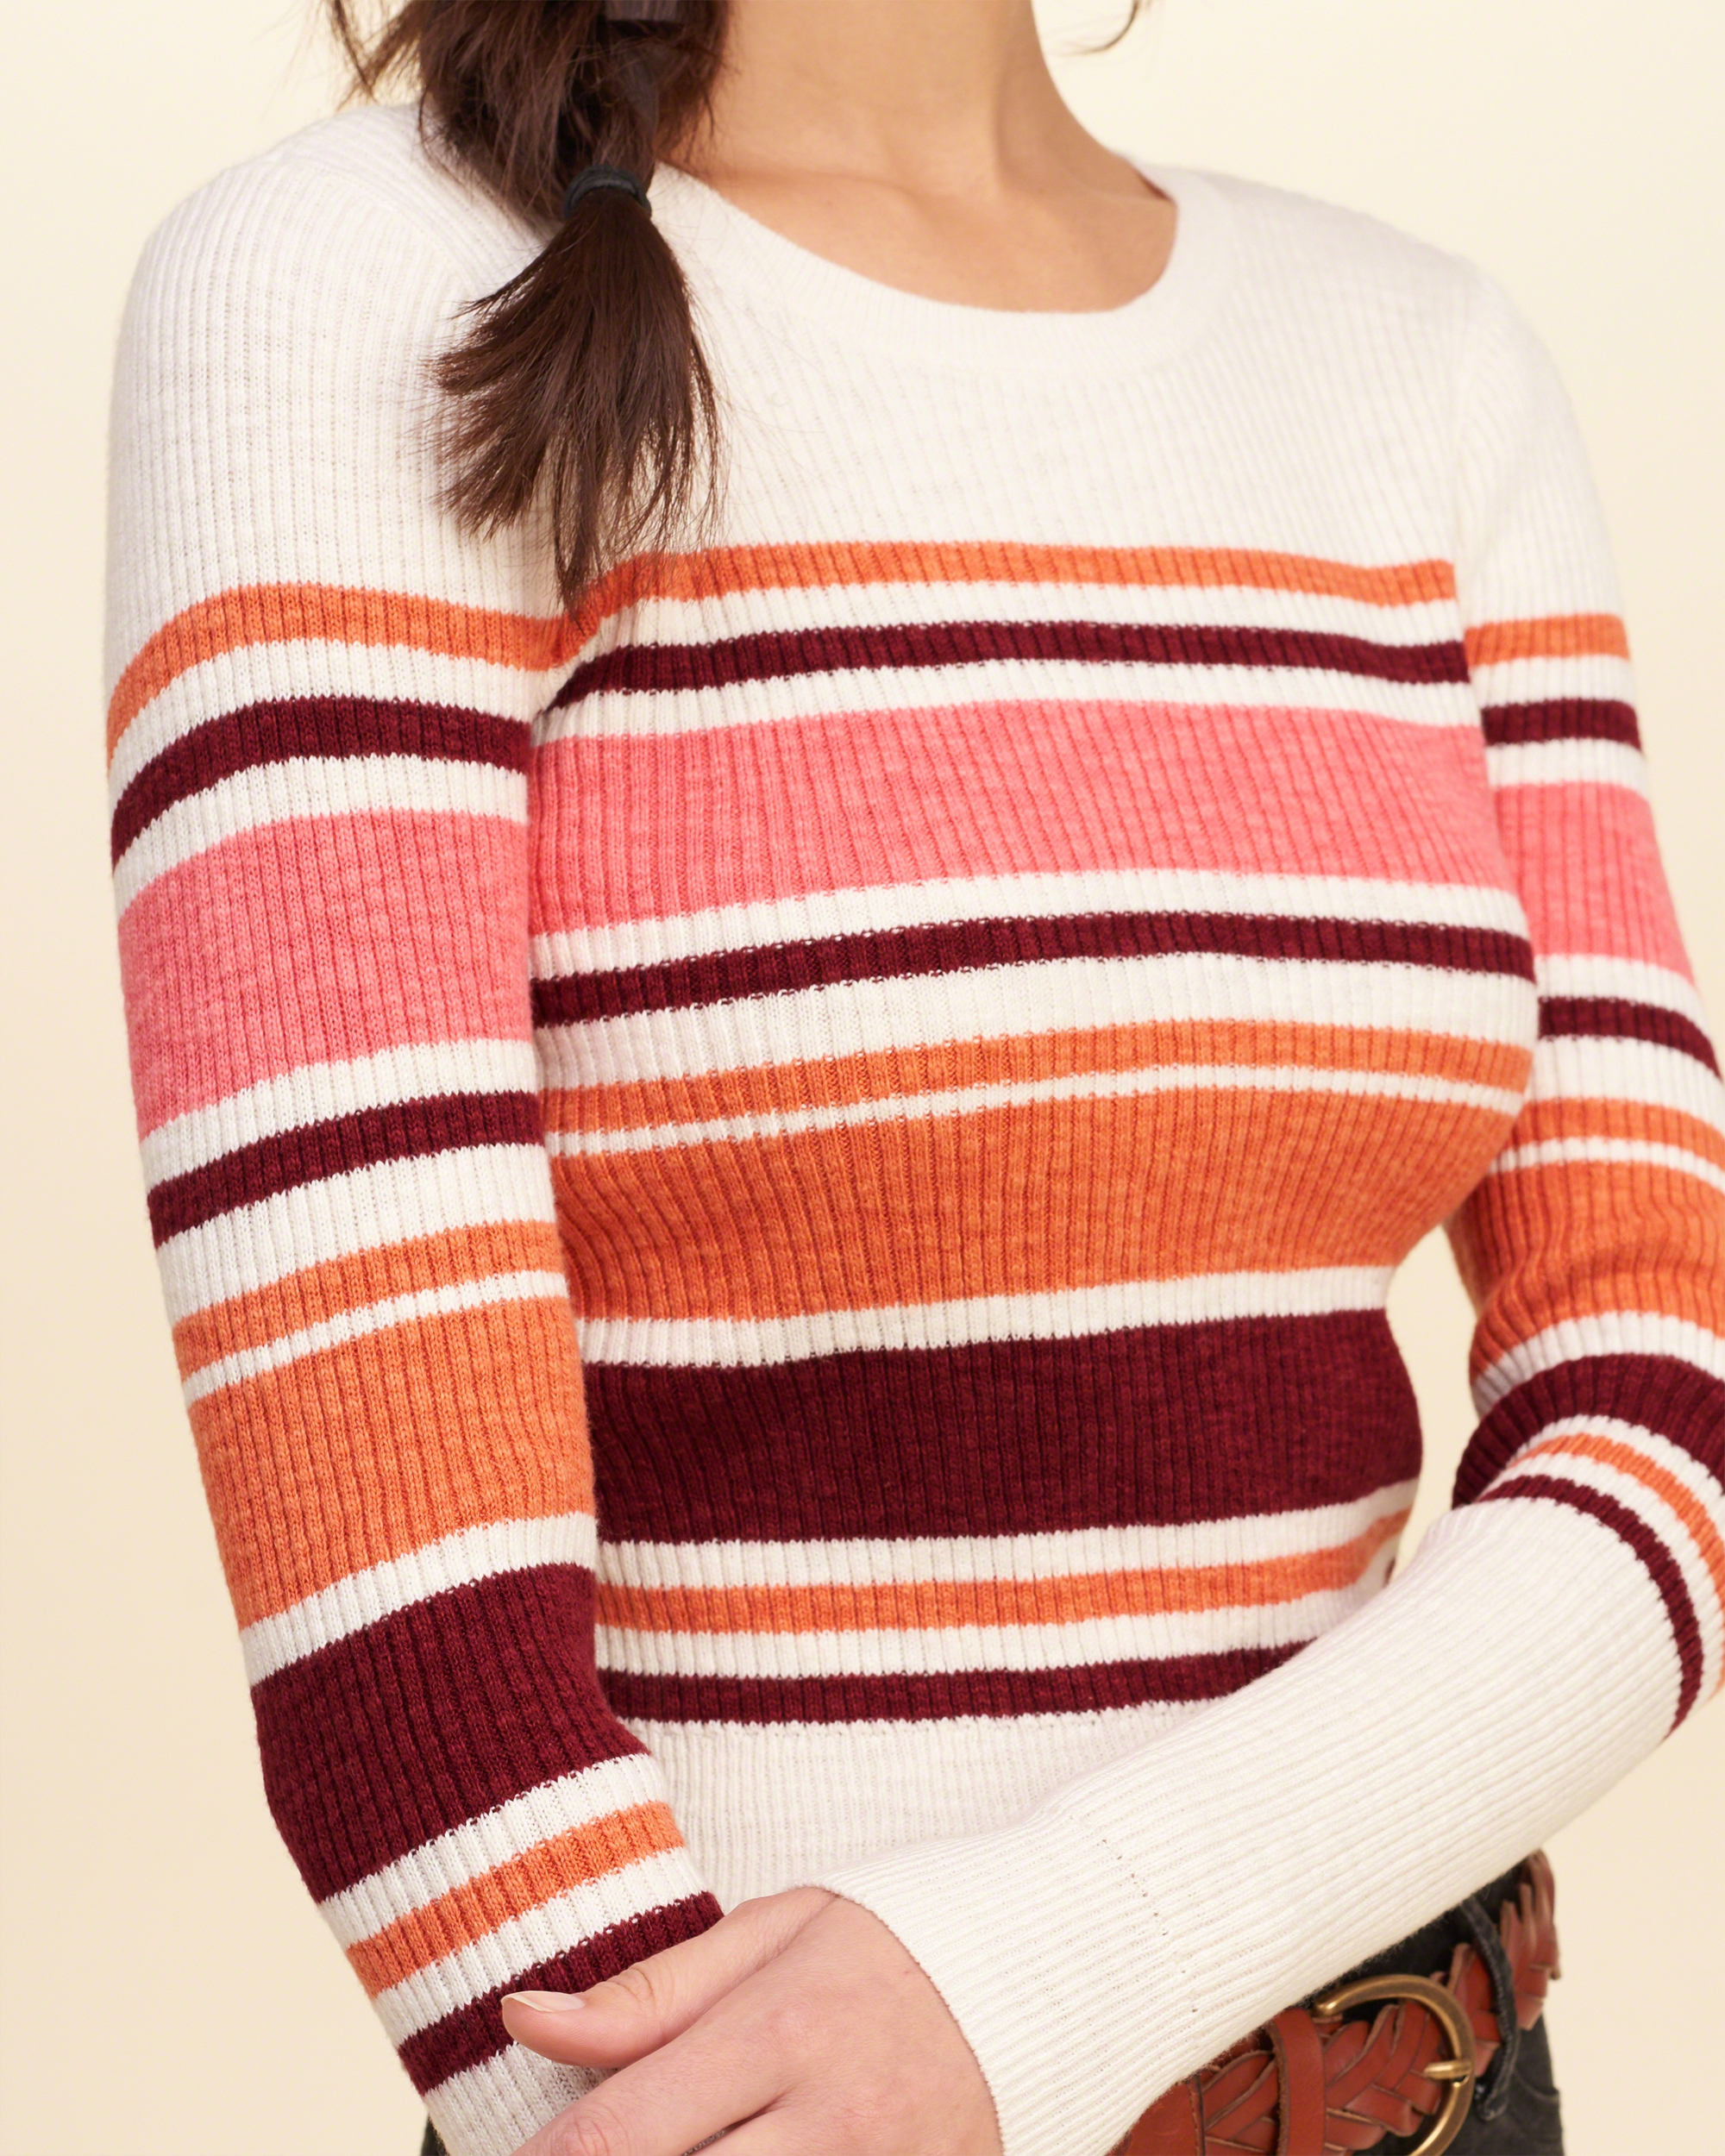 Hollister Oberbekleidung Returns Exchanges Hollister Pullover Hollister Hoodies Hollister Jeans: Hollister Cotton Stripe Cropped Ribbed Sweater In Red